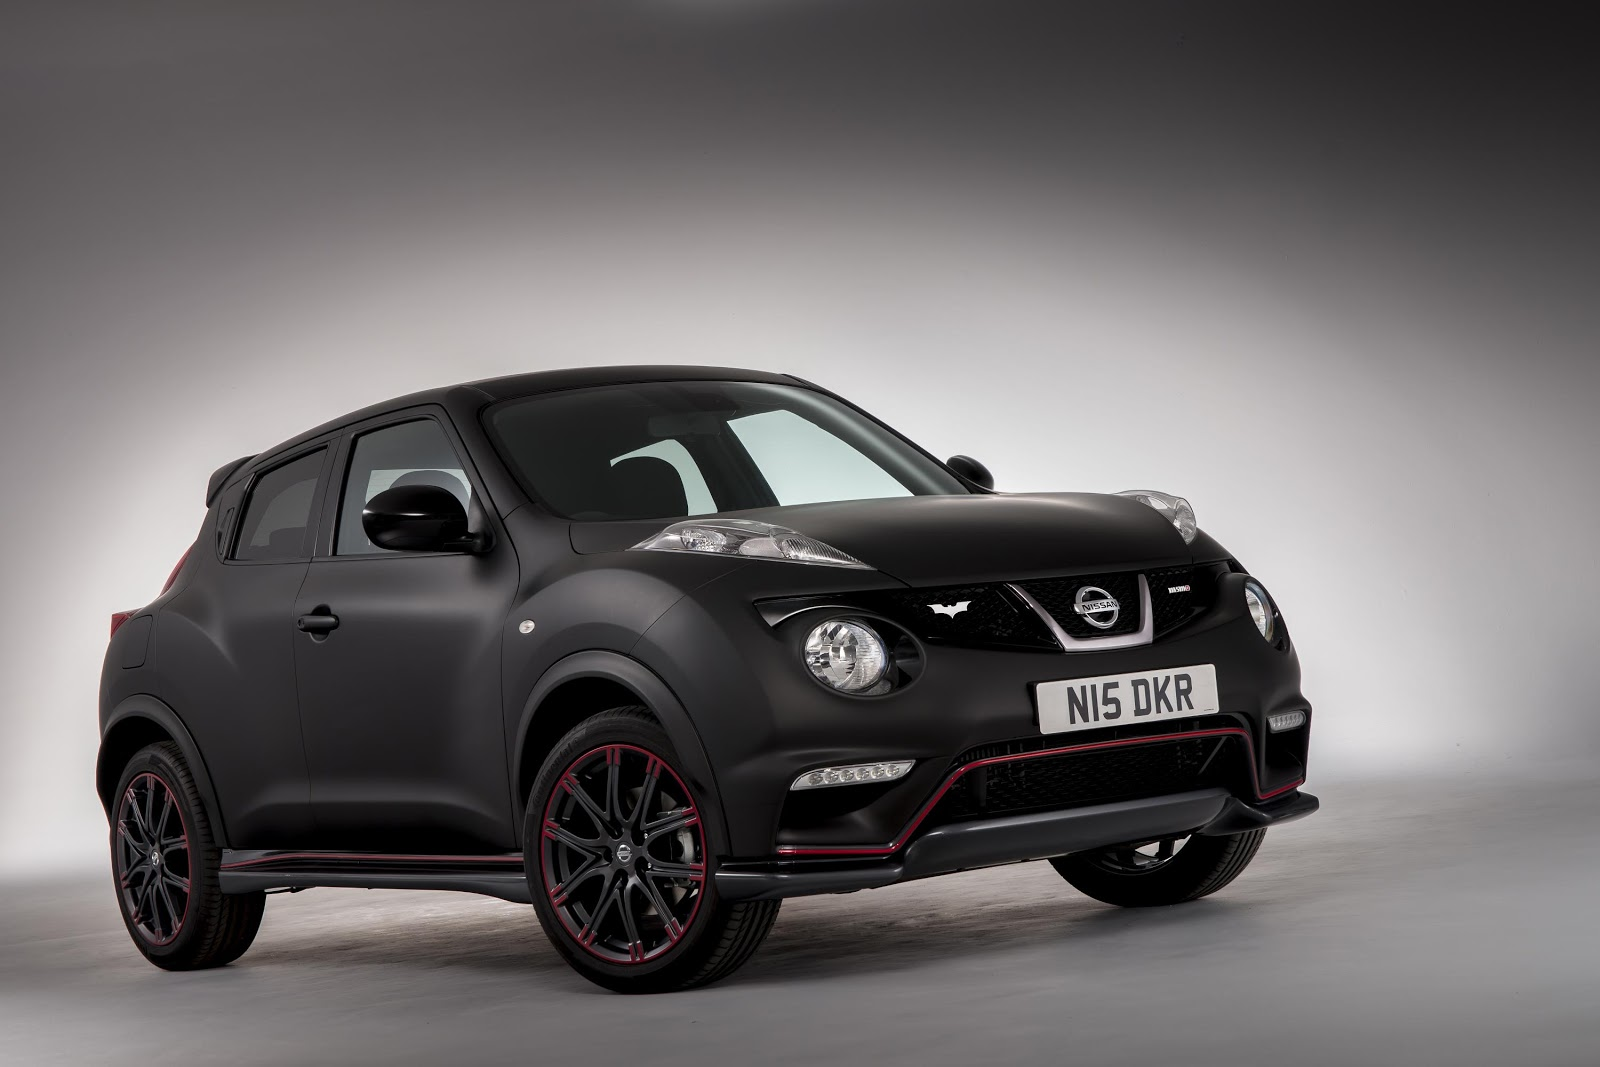 Nissan makes a Juke tribute to The Dark Knight Rises